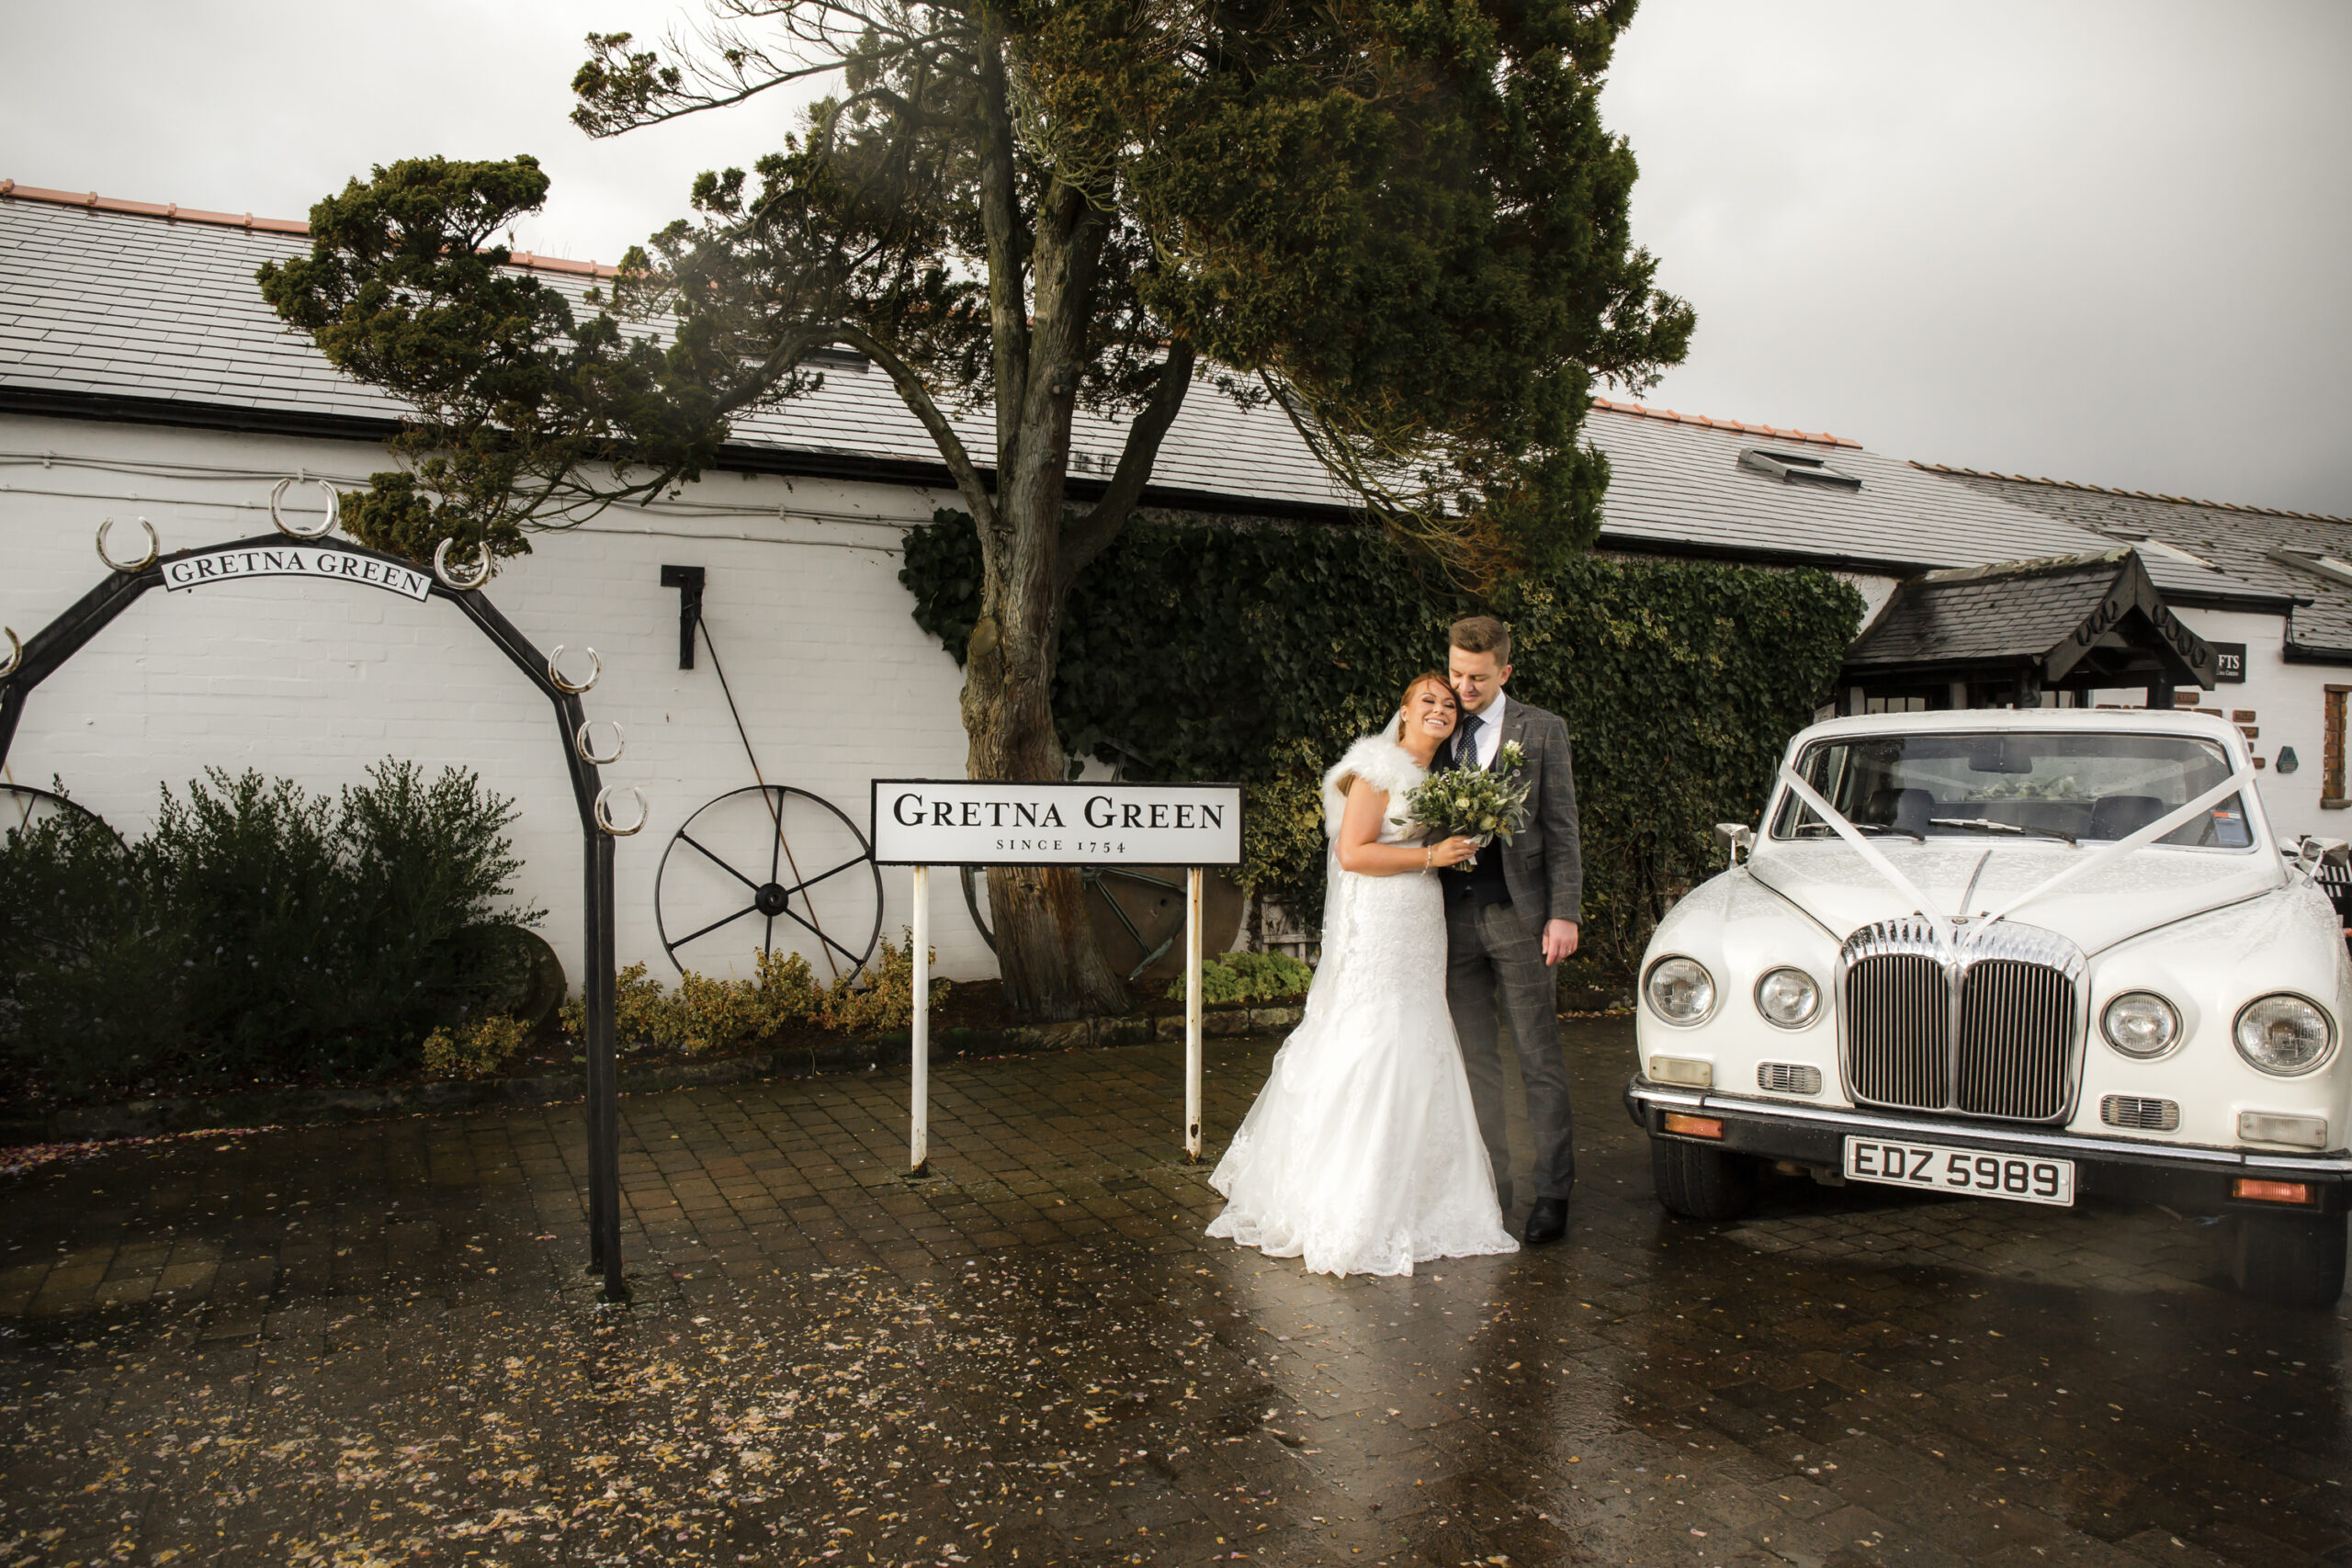 bride and groom outside the famous blacksmith shop next to wedding car at gretna green